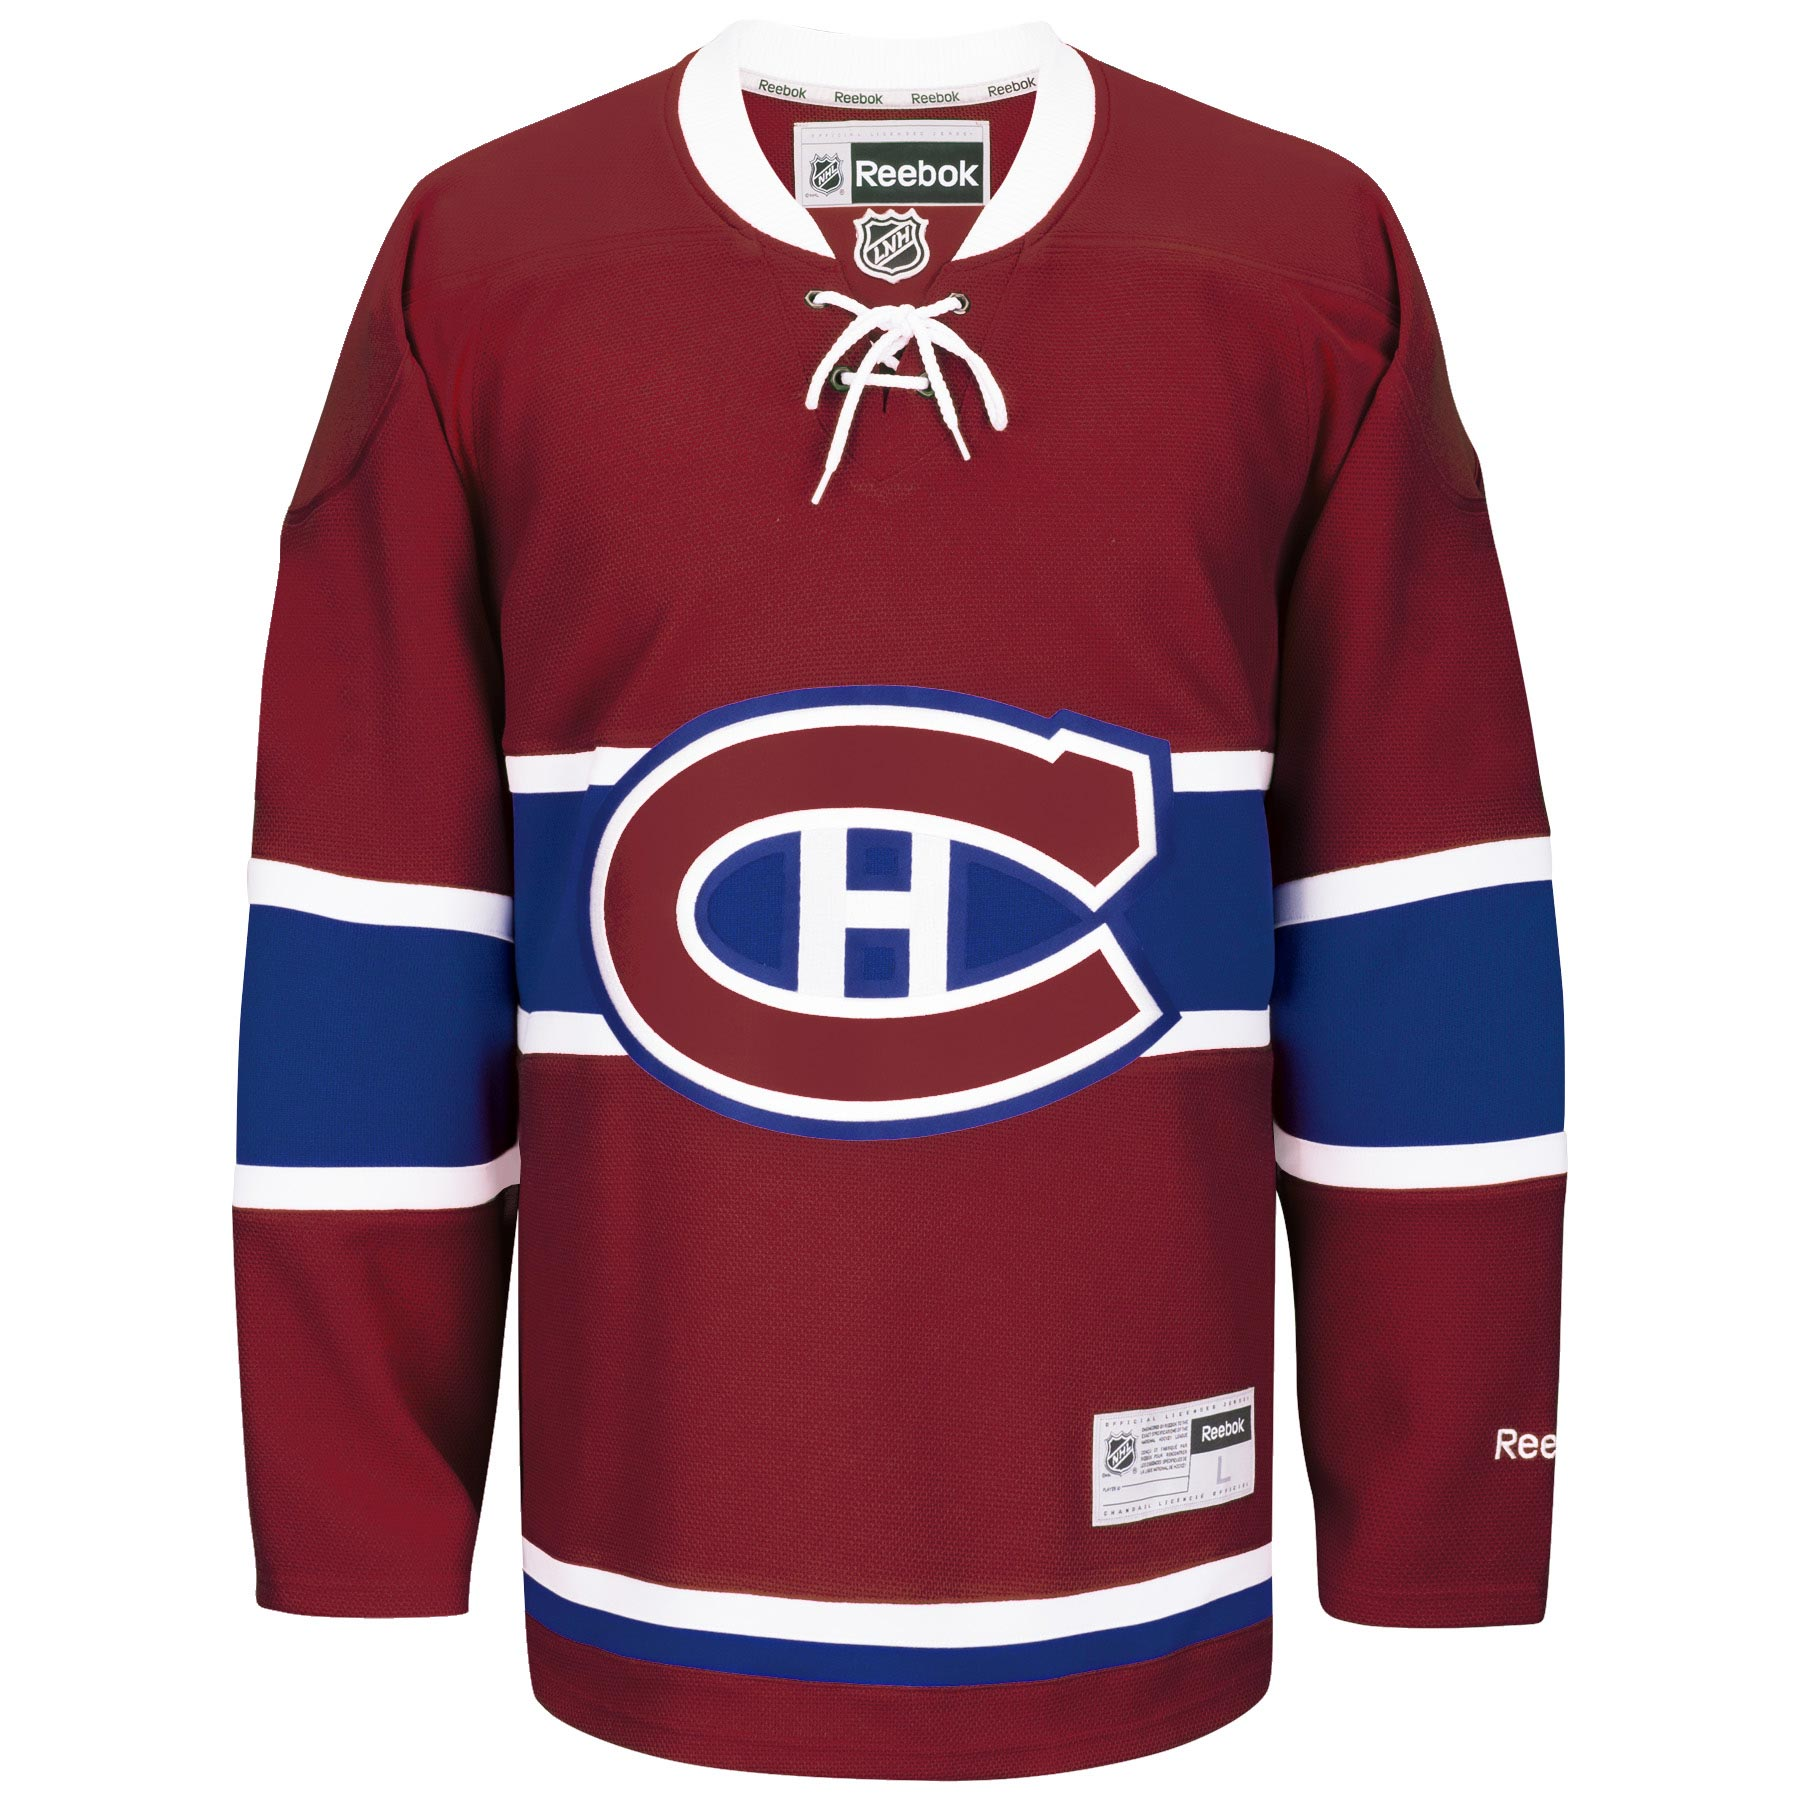 Montreal Canadiens Reebok 2015 16 Premier Replica Home Nhl Hockey Jersey Youth